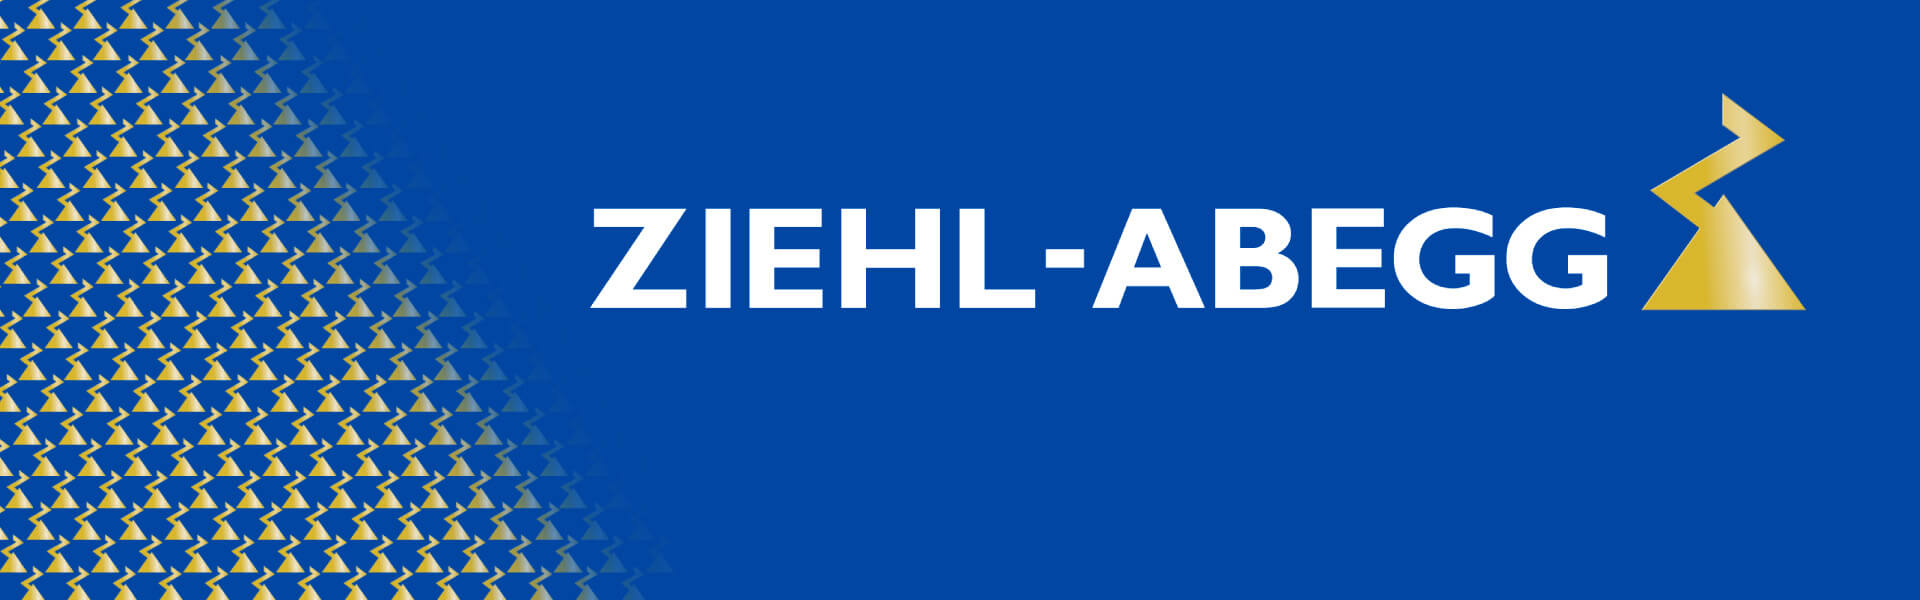 http://aasansor.ir/images/product/3_type_of_parts/1_motor/2_gearboxless/1_germany/ziehlabegg/heder-ziehl-abegg.jpg